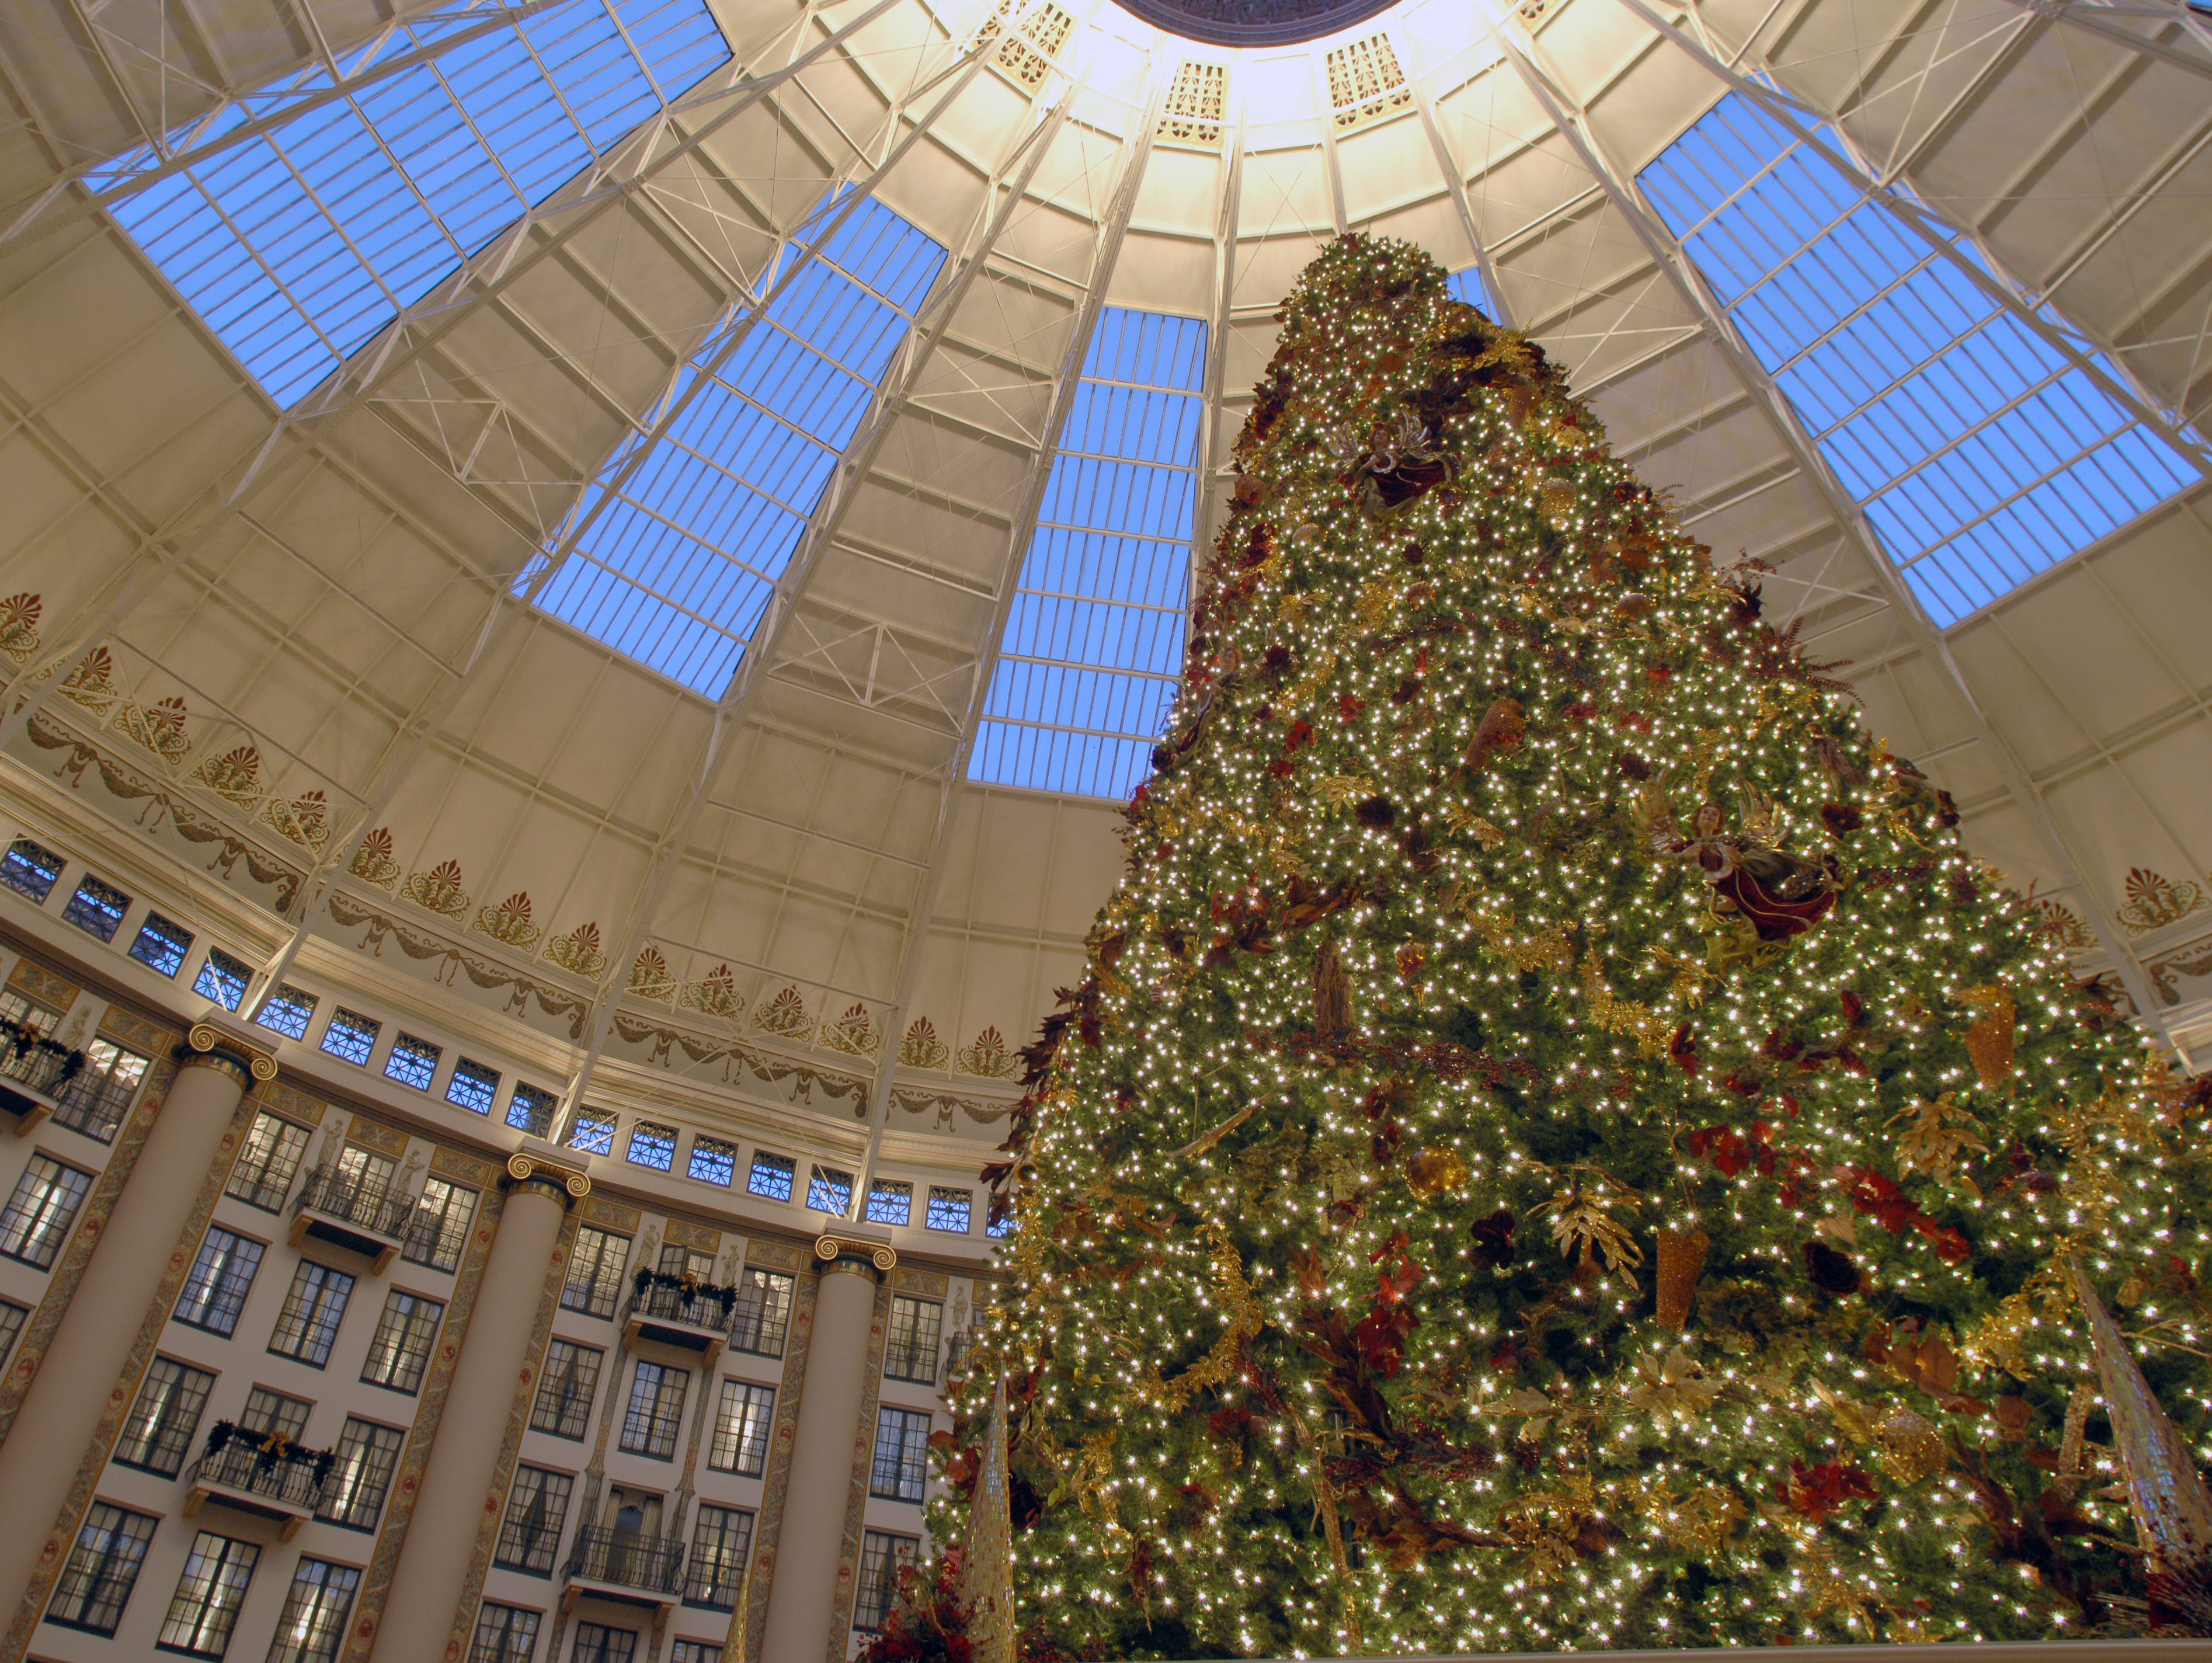 Take in the magic of the season at French Lick. Win an overnight stay for two. Enter 11/15-12/31